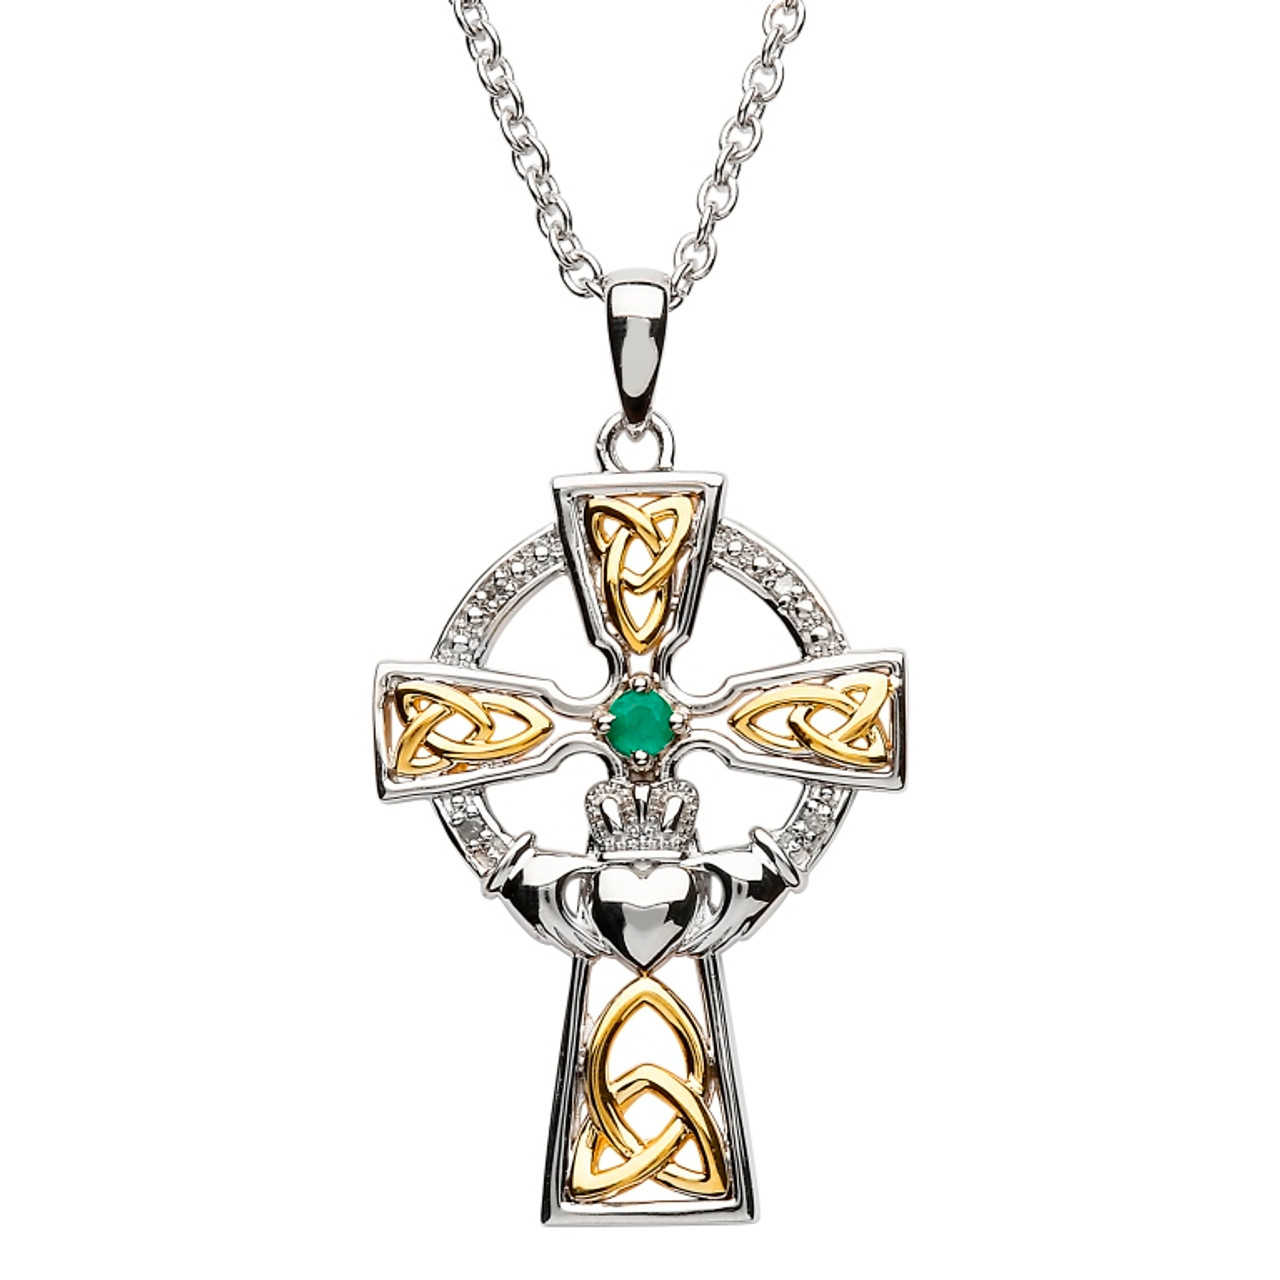 gold pendant rose celtic cross necklace charm